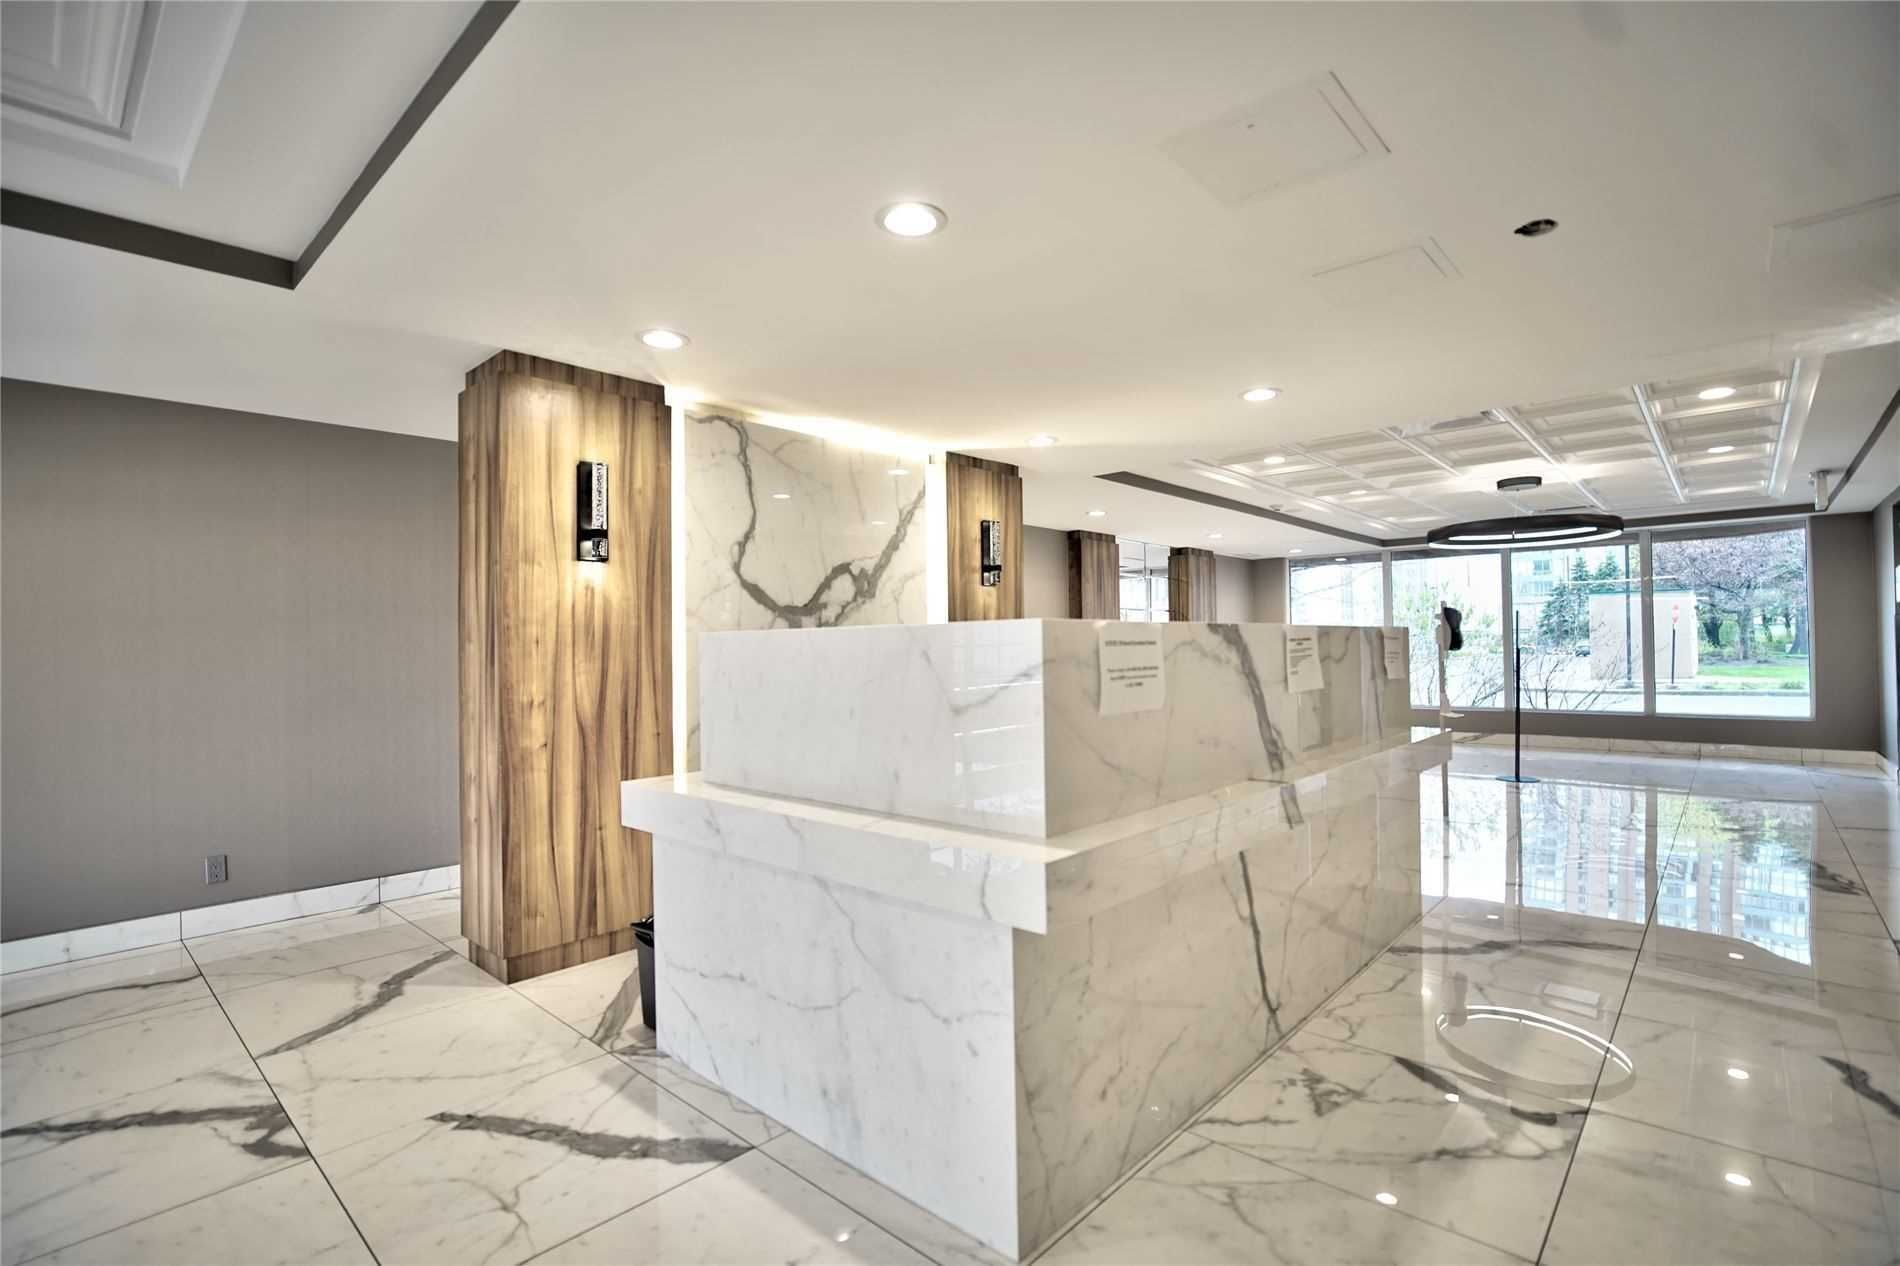 155 Hillcrest Ave, unit 1012 for sale in Toronto - image #2